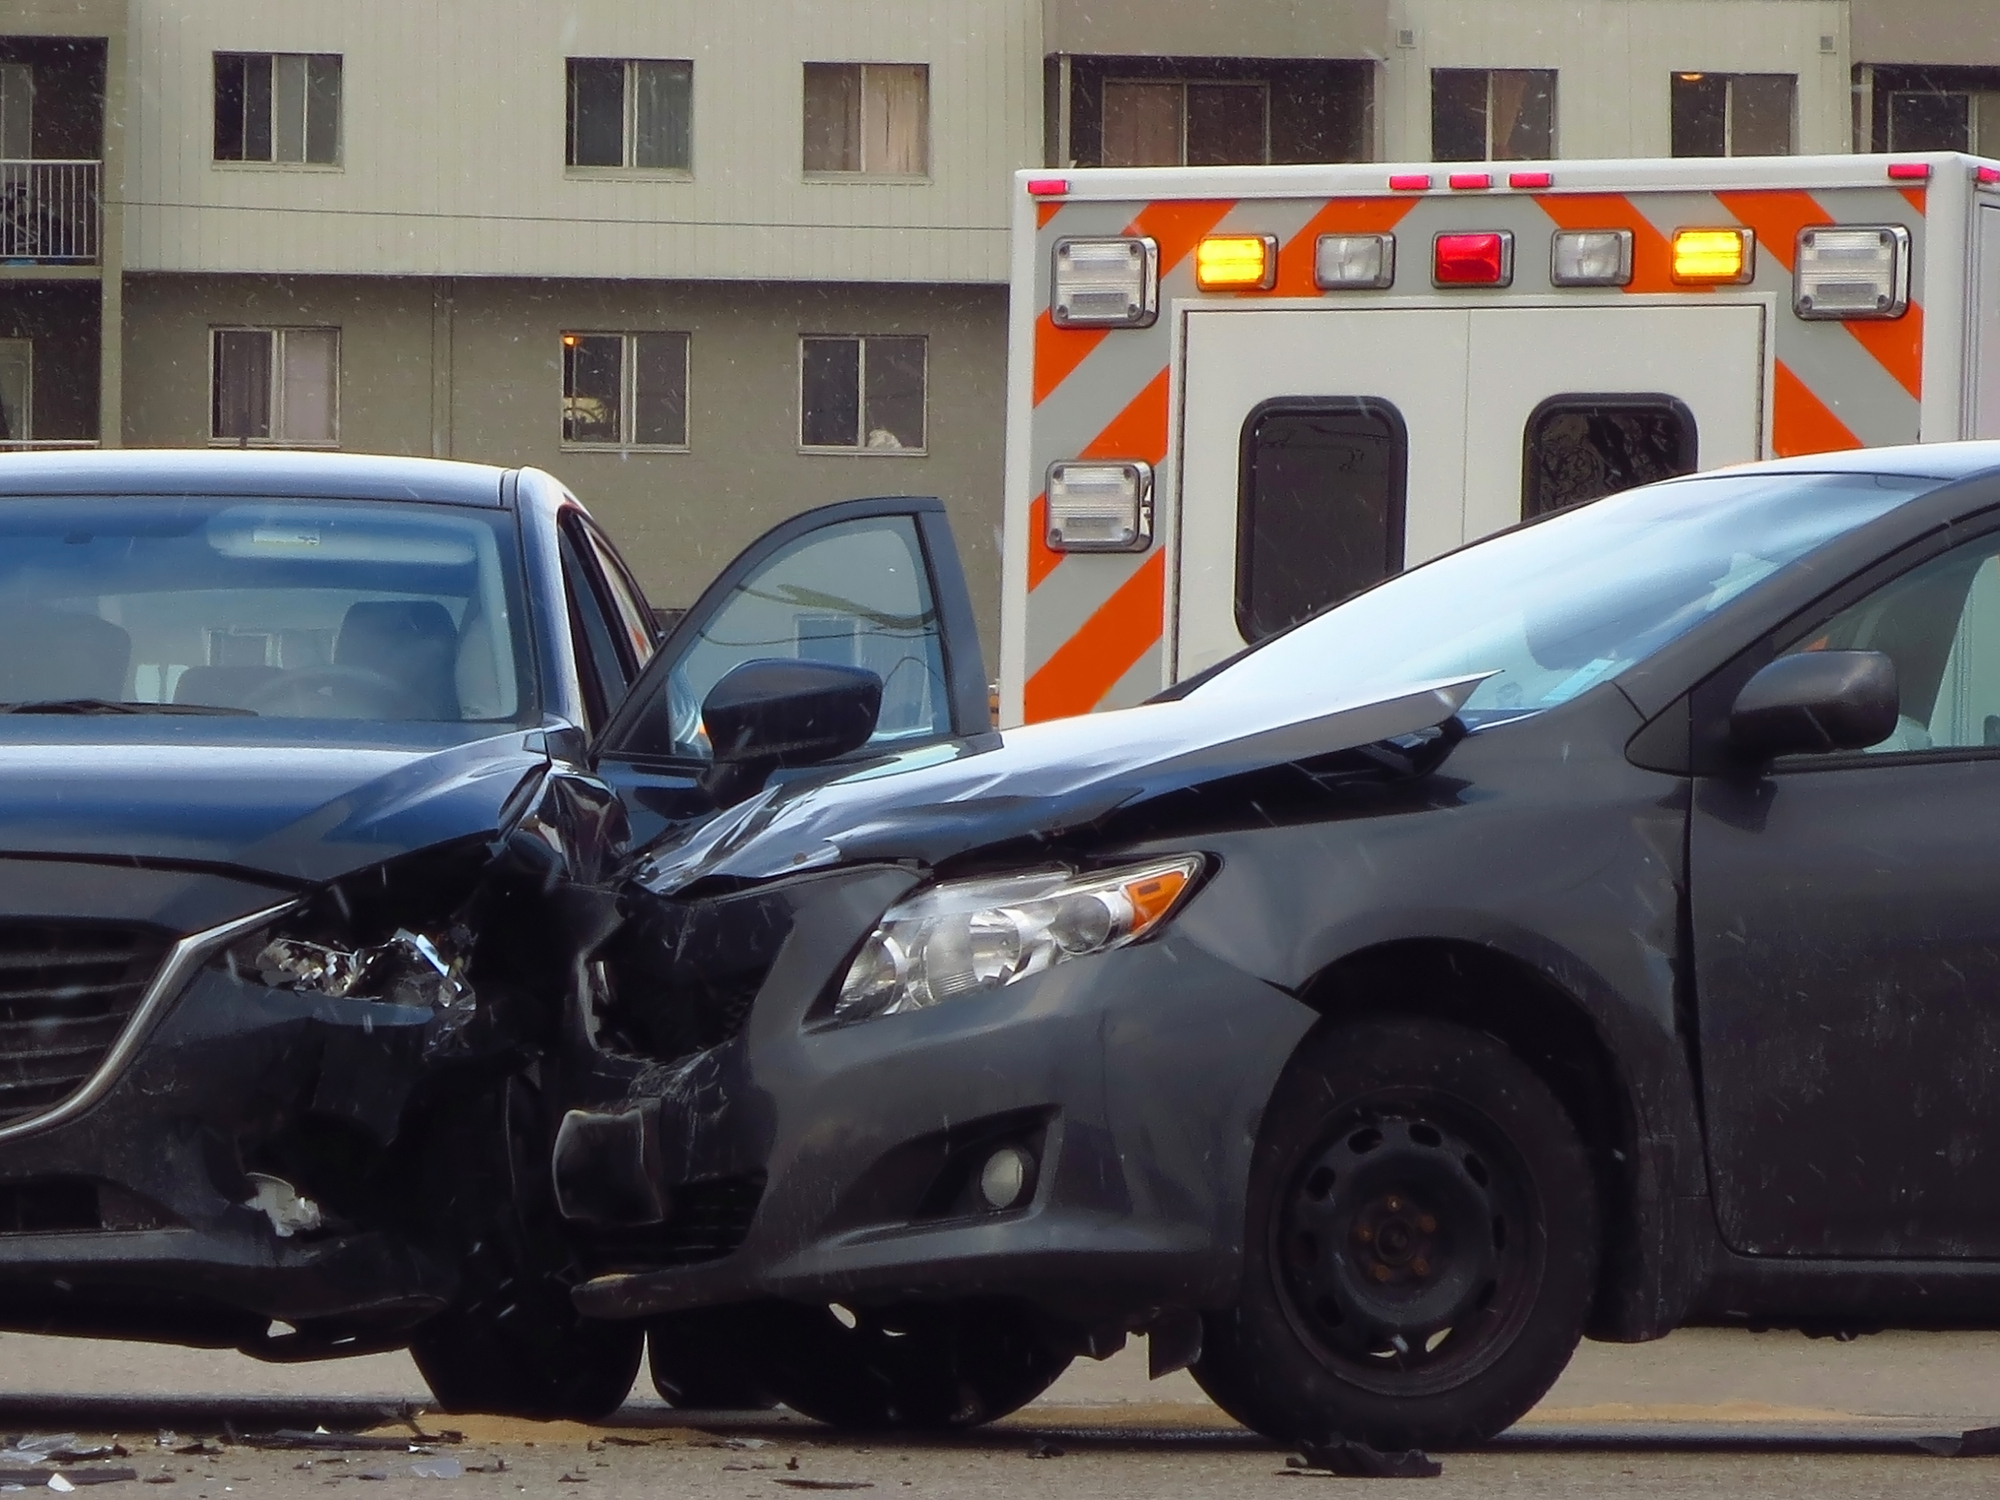 The scene of a car accident on the road in Colorado Springs.